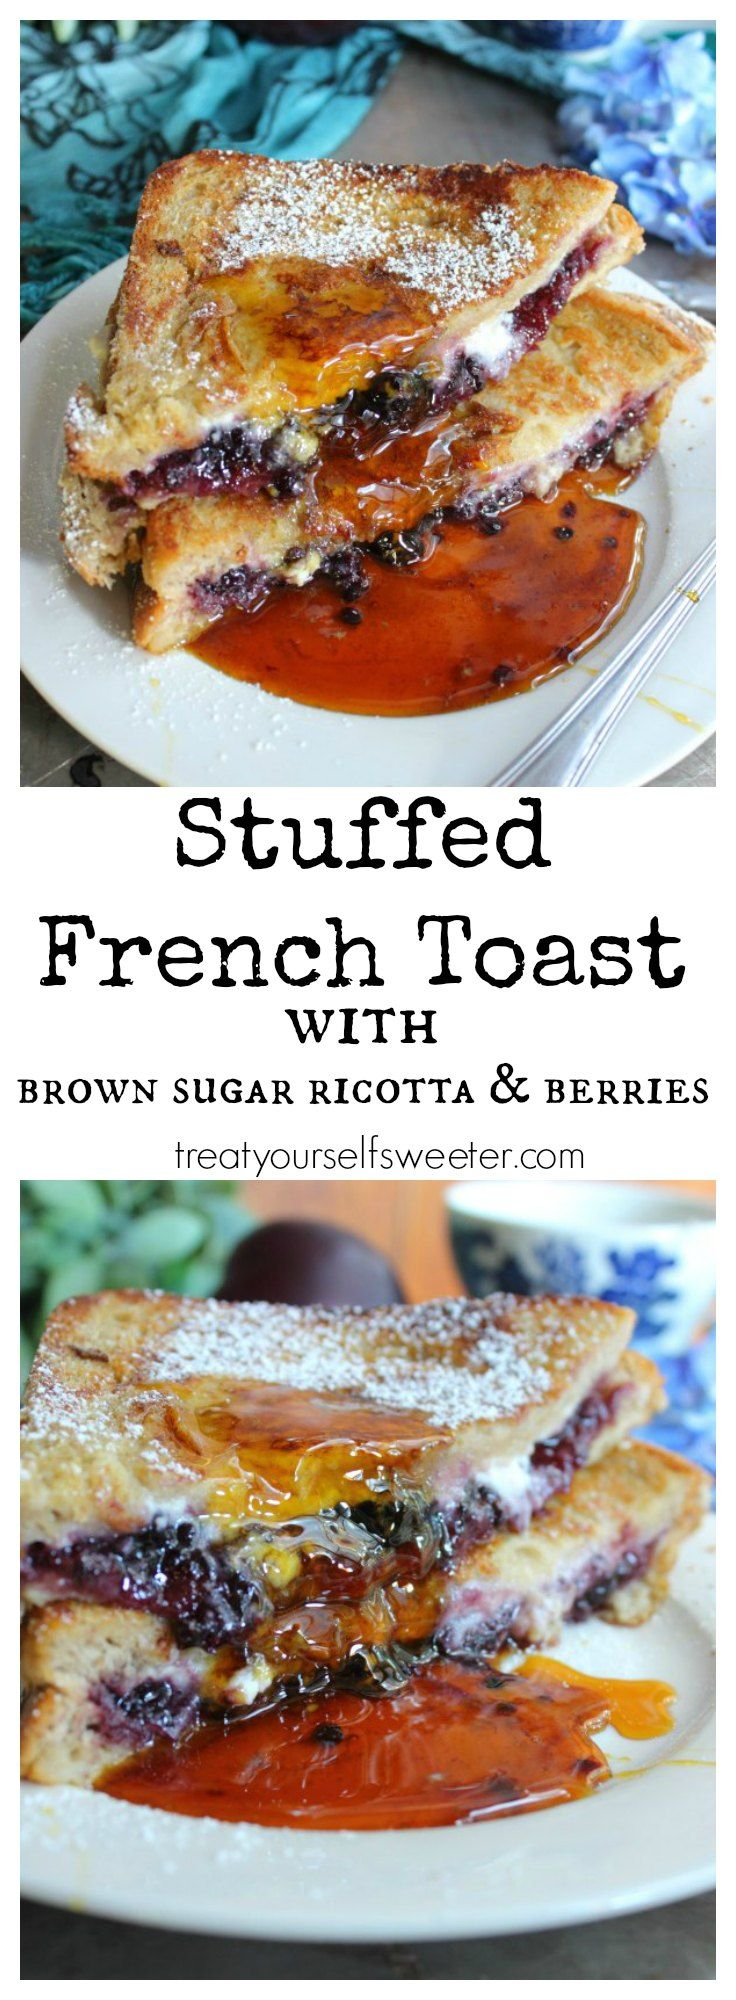 Stuffed French Toast with Ricotta and Berries; hot, crisp on the outside and gooey and sweet on the inside. A perfect way to start the day!